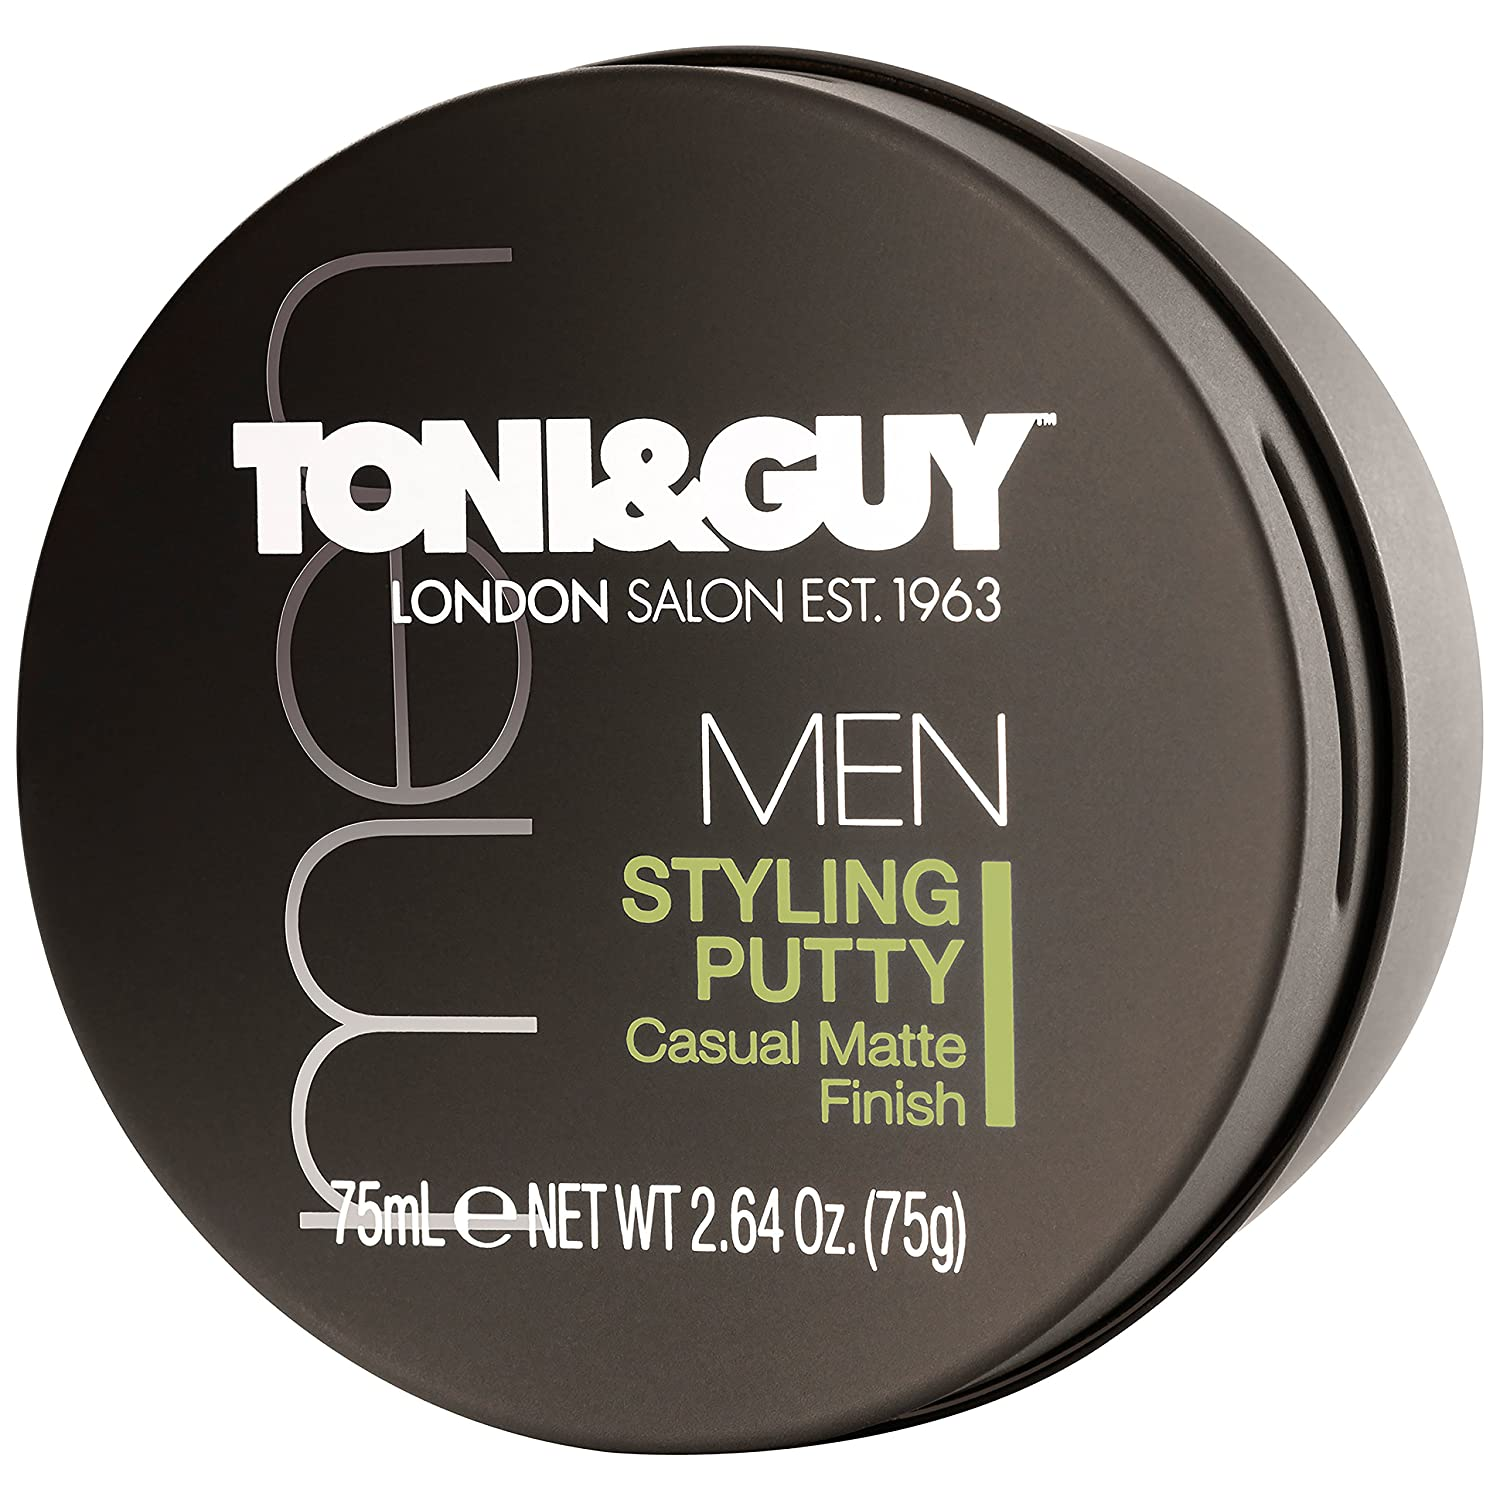 Toni And Guy Men Styling putty 75ml Toni & Guy 8753720